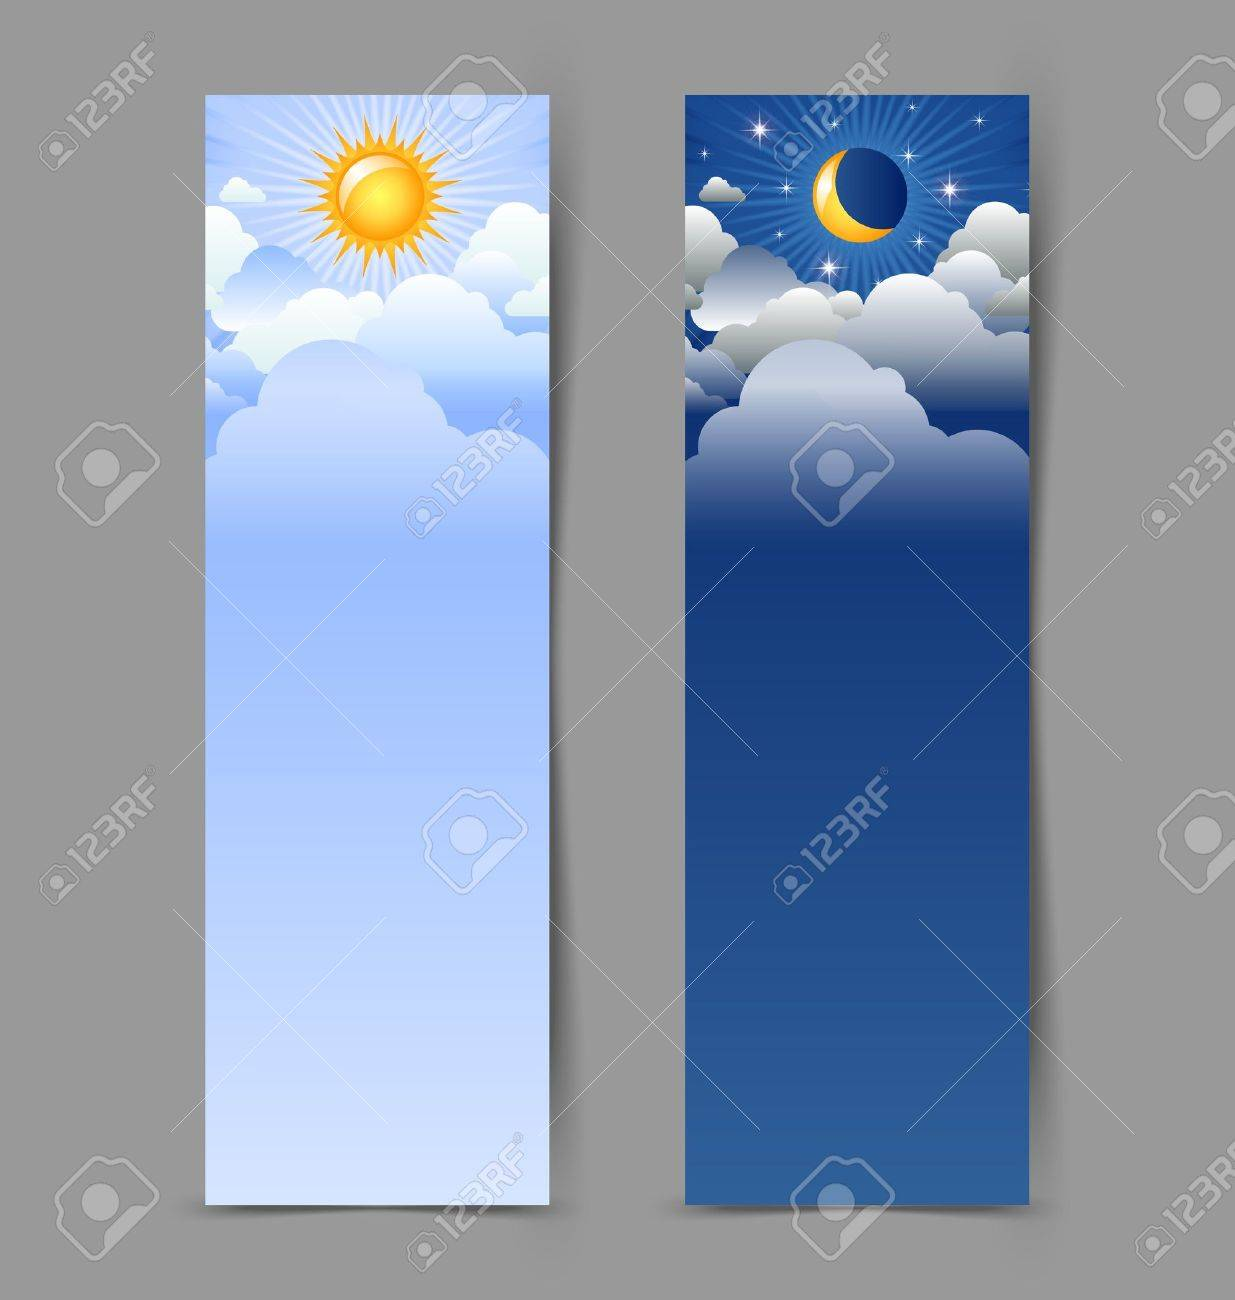 Day and night banners isolated on grey background - 14584133